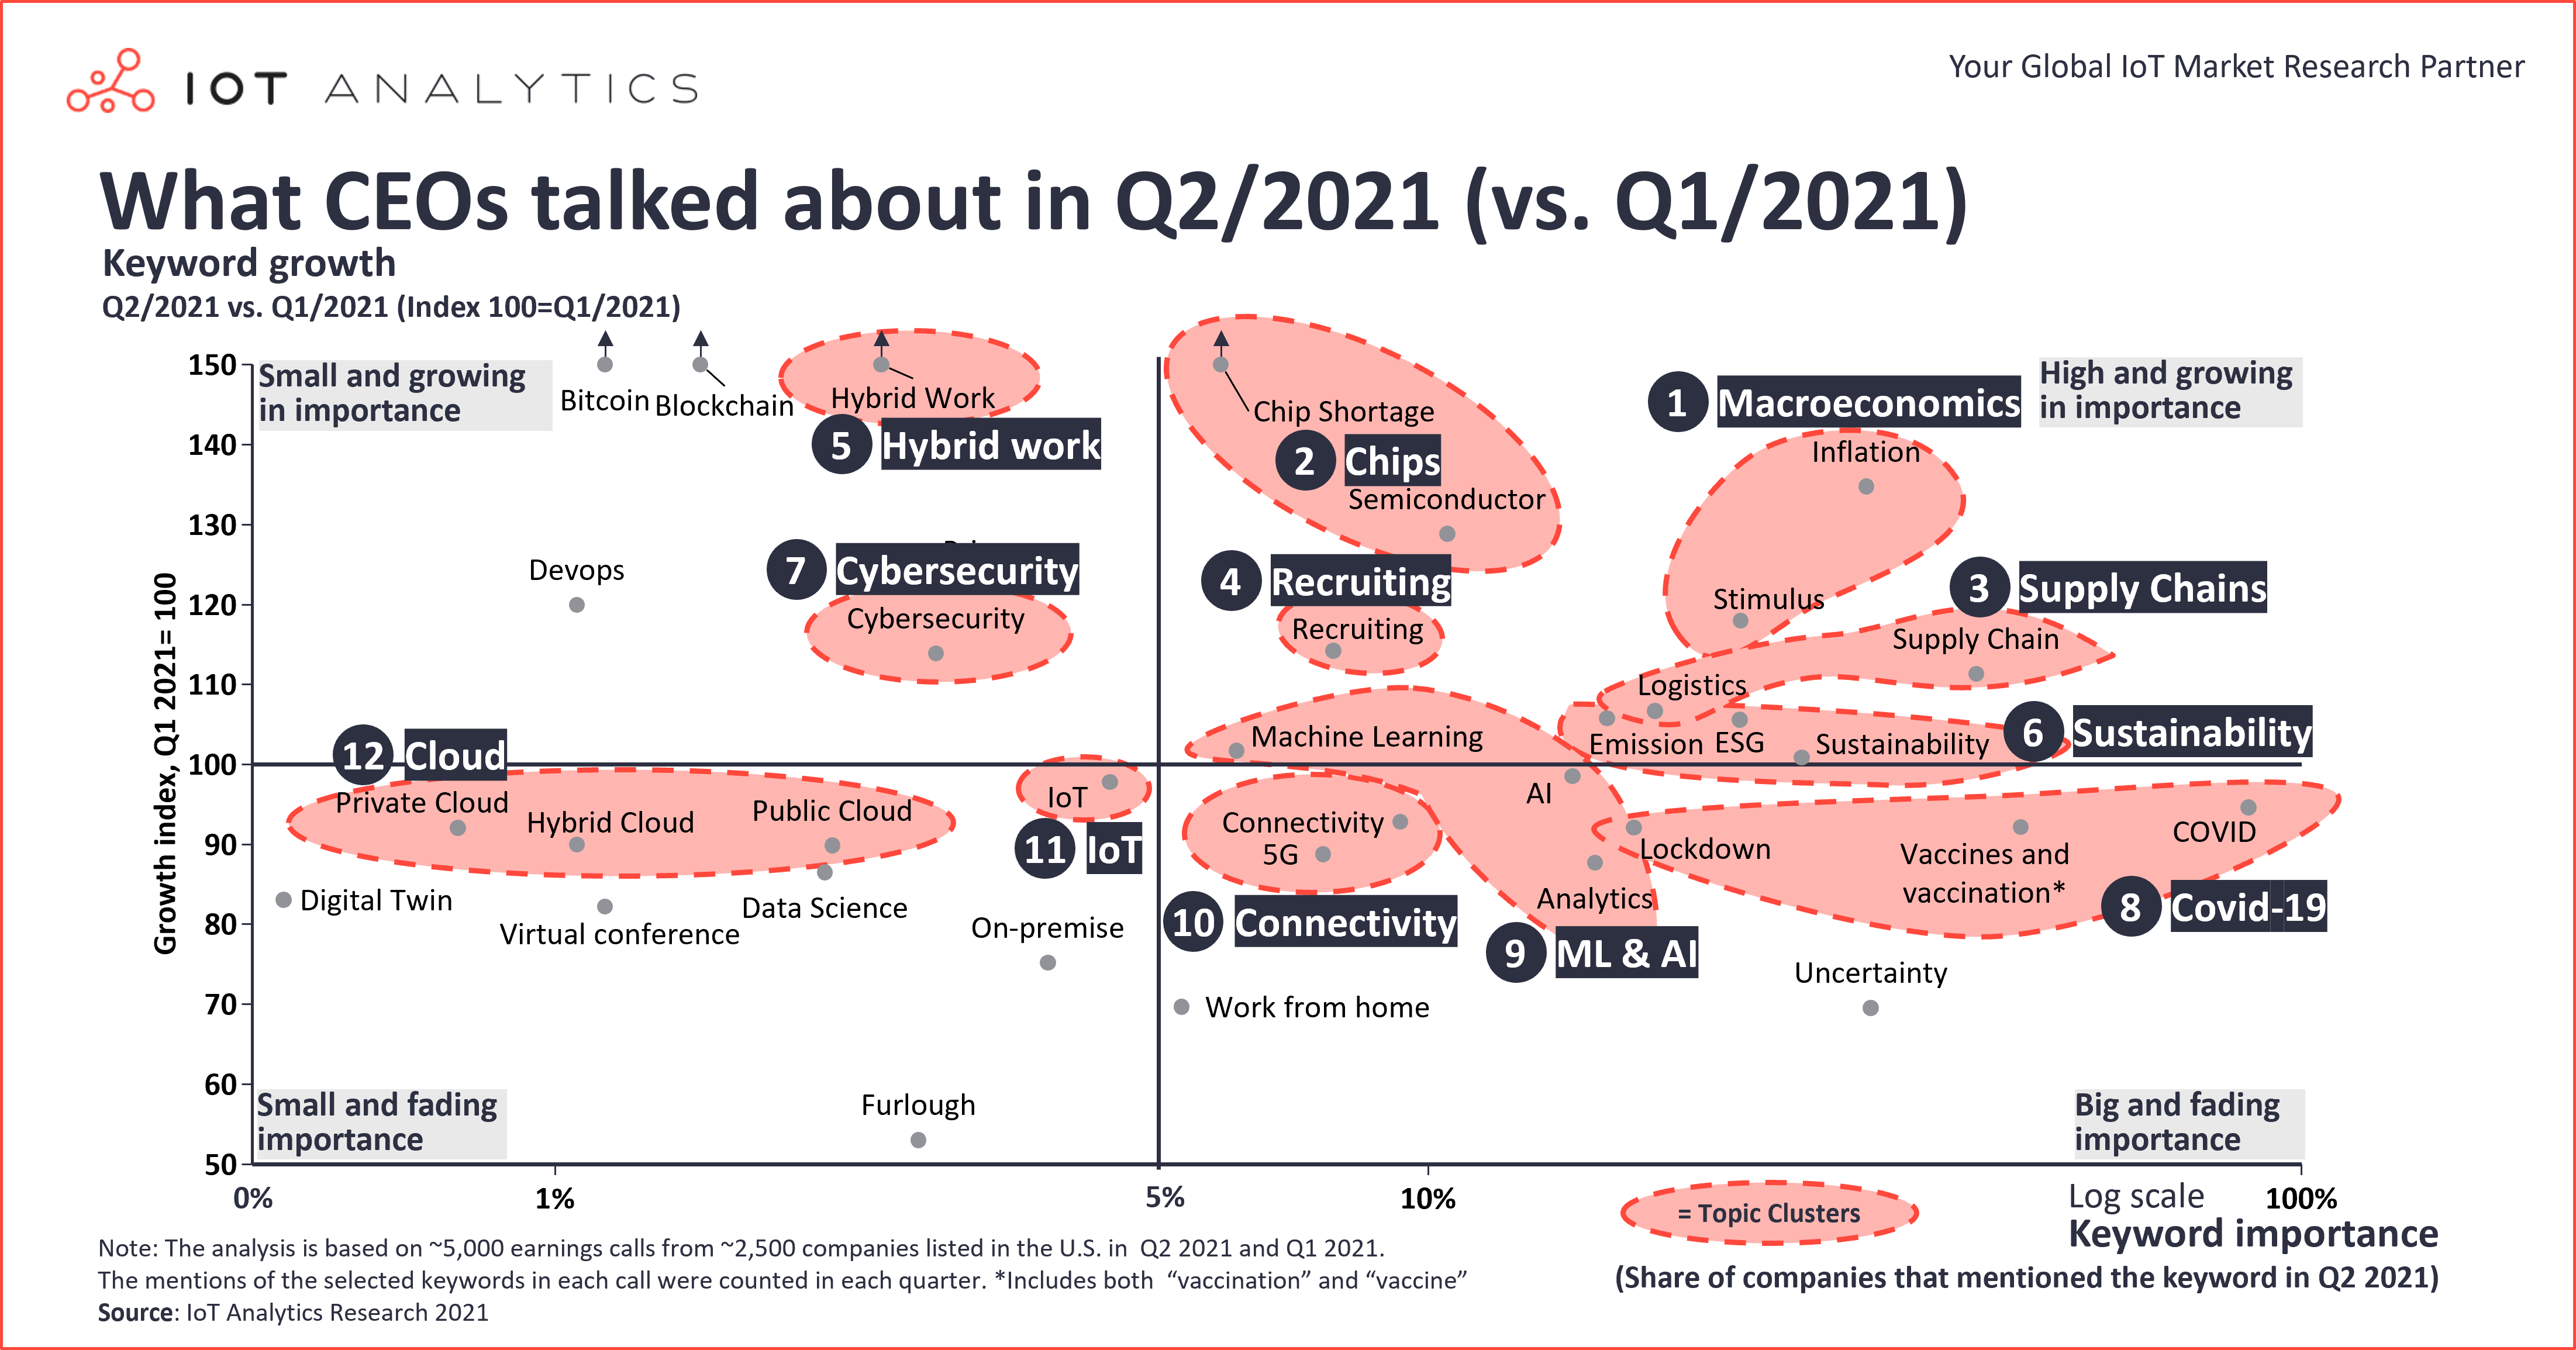 What CEOs Talked About in Q2 2021